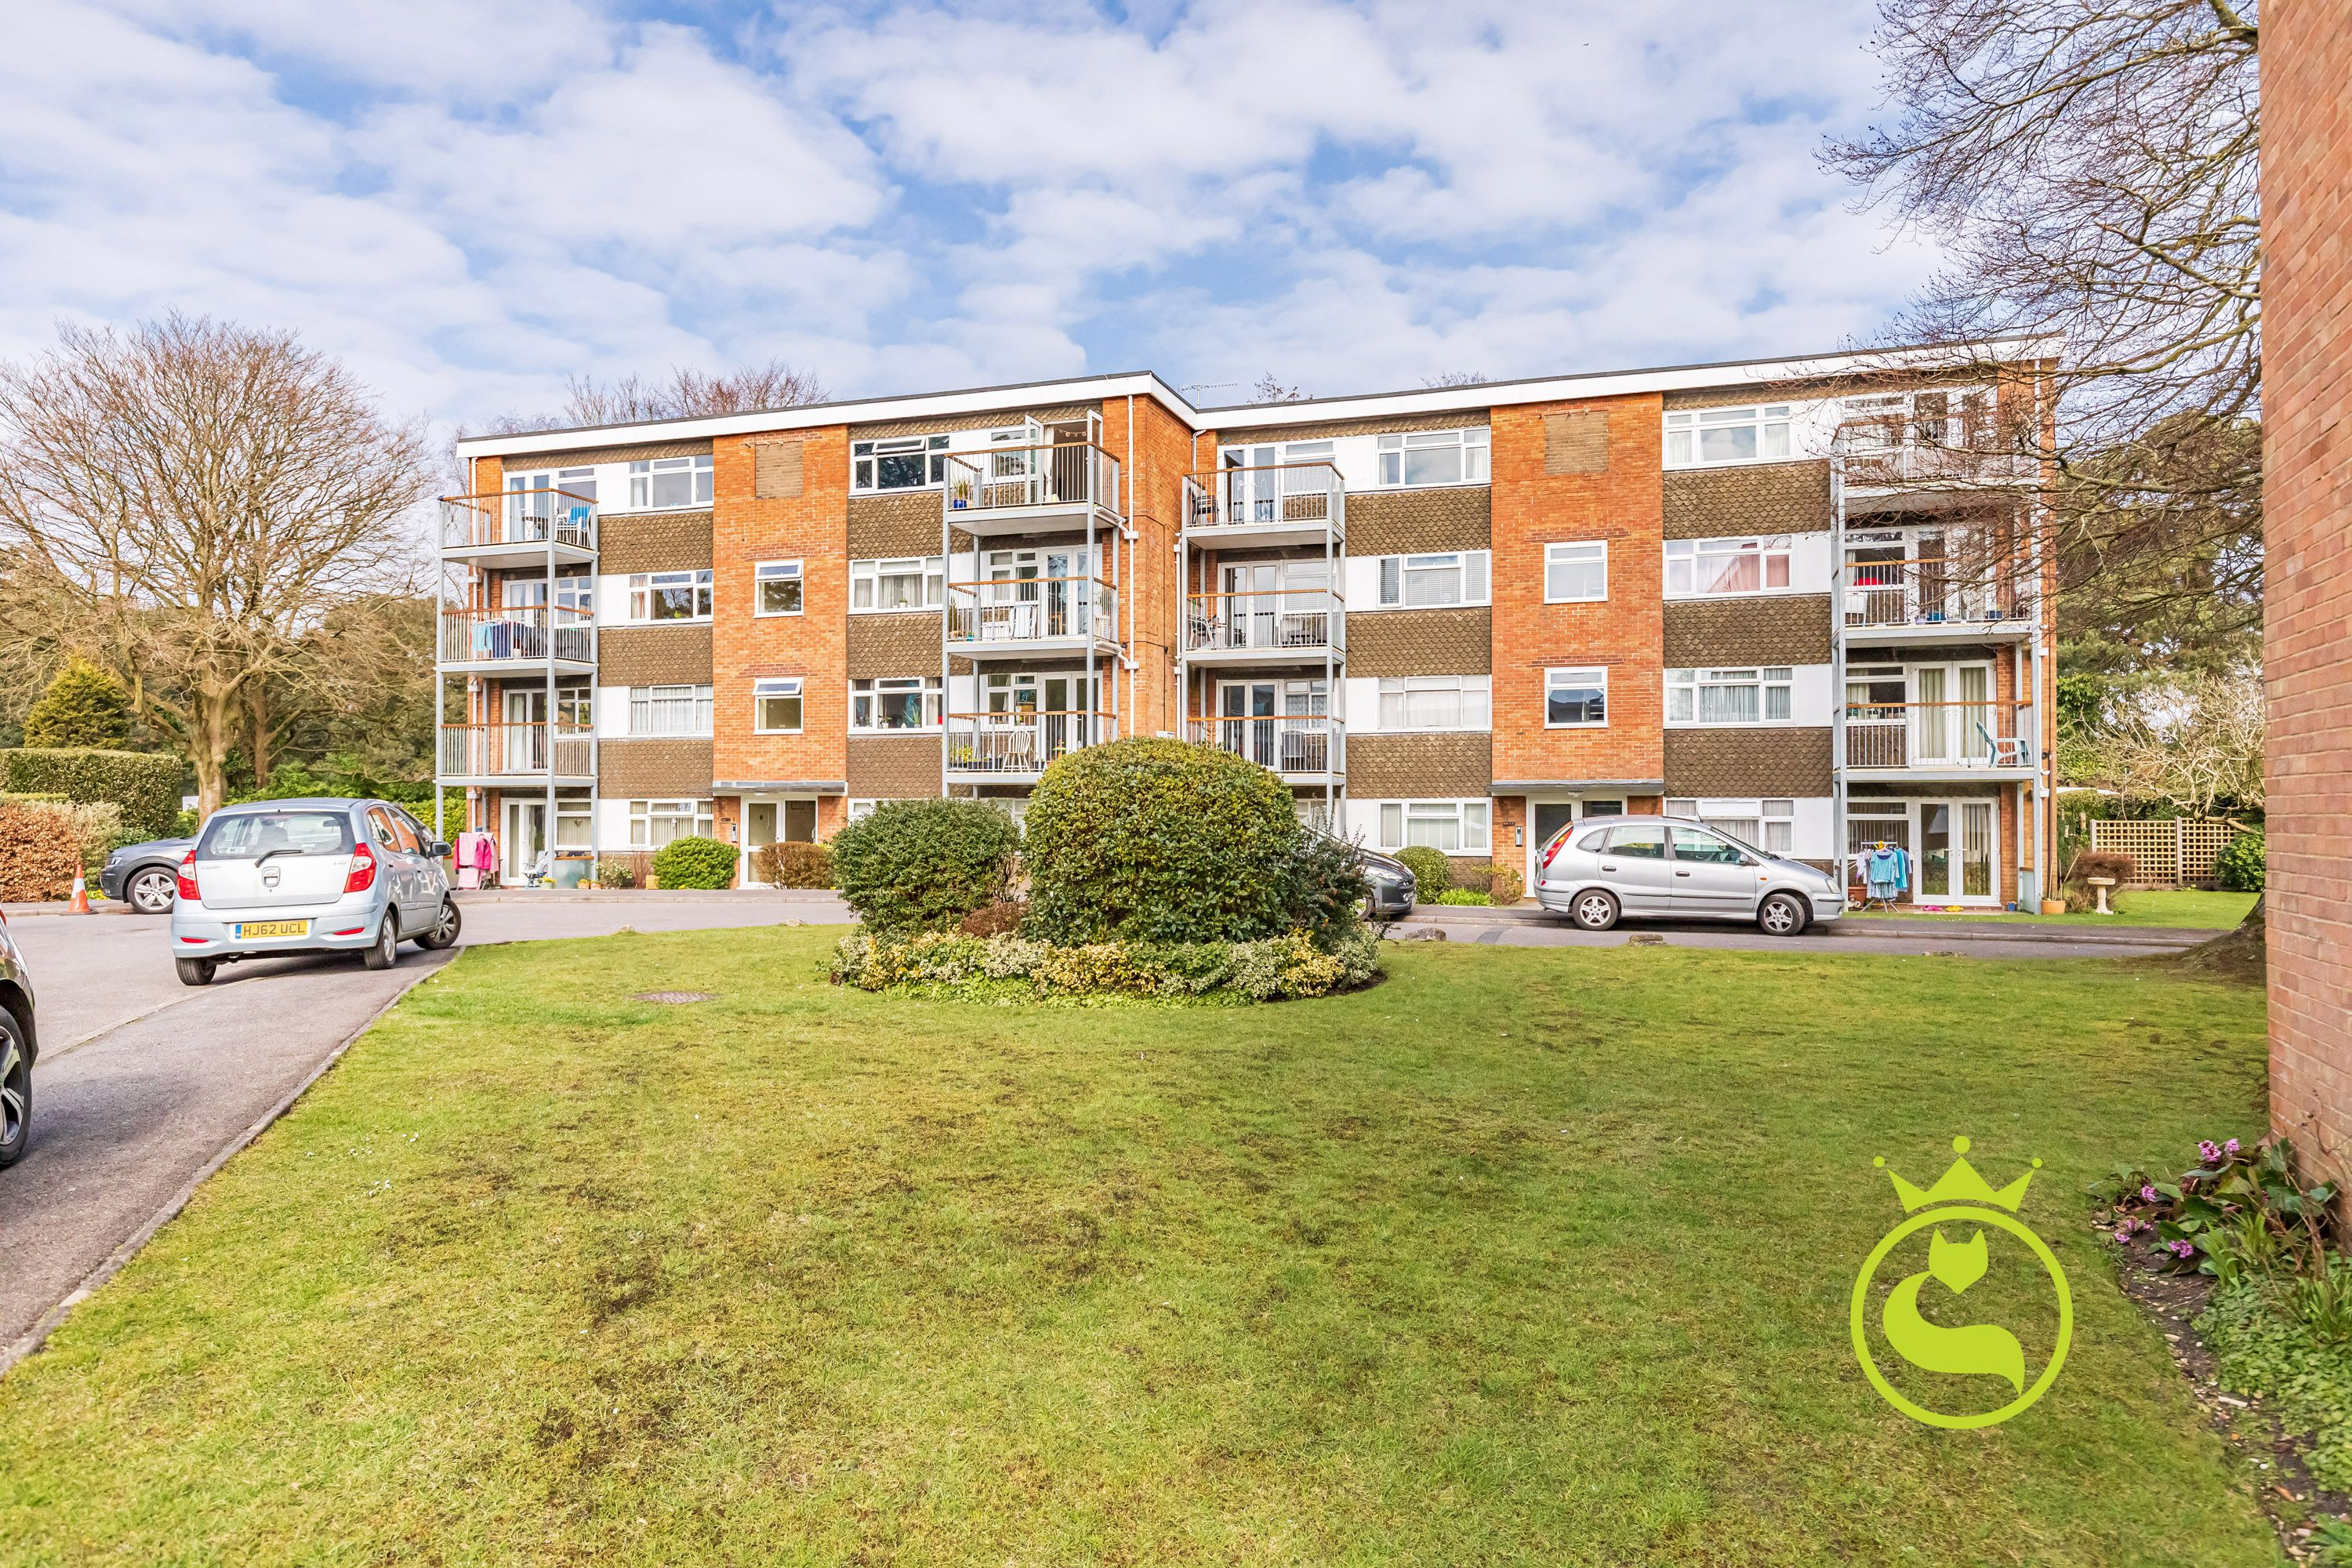 Two double bedroom top floor apartment complete with south facing balcony. Book your viewing slot now!